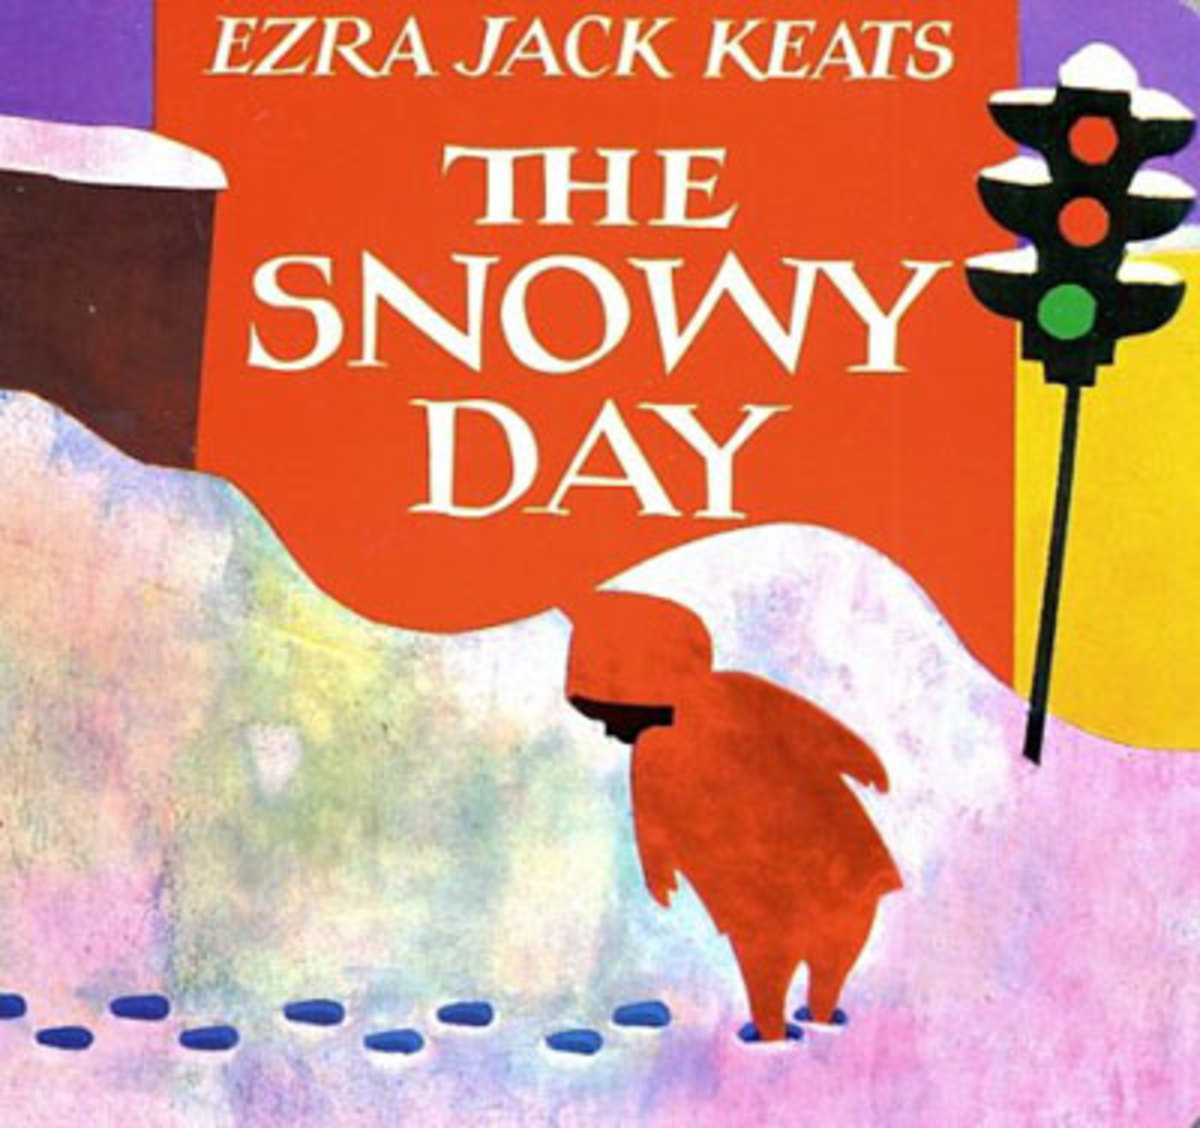 This all-time classic children's story about snow play captures the wonder and magic of childhood.